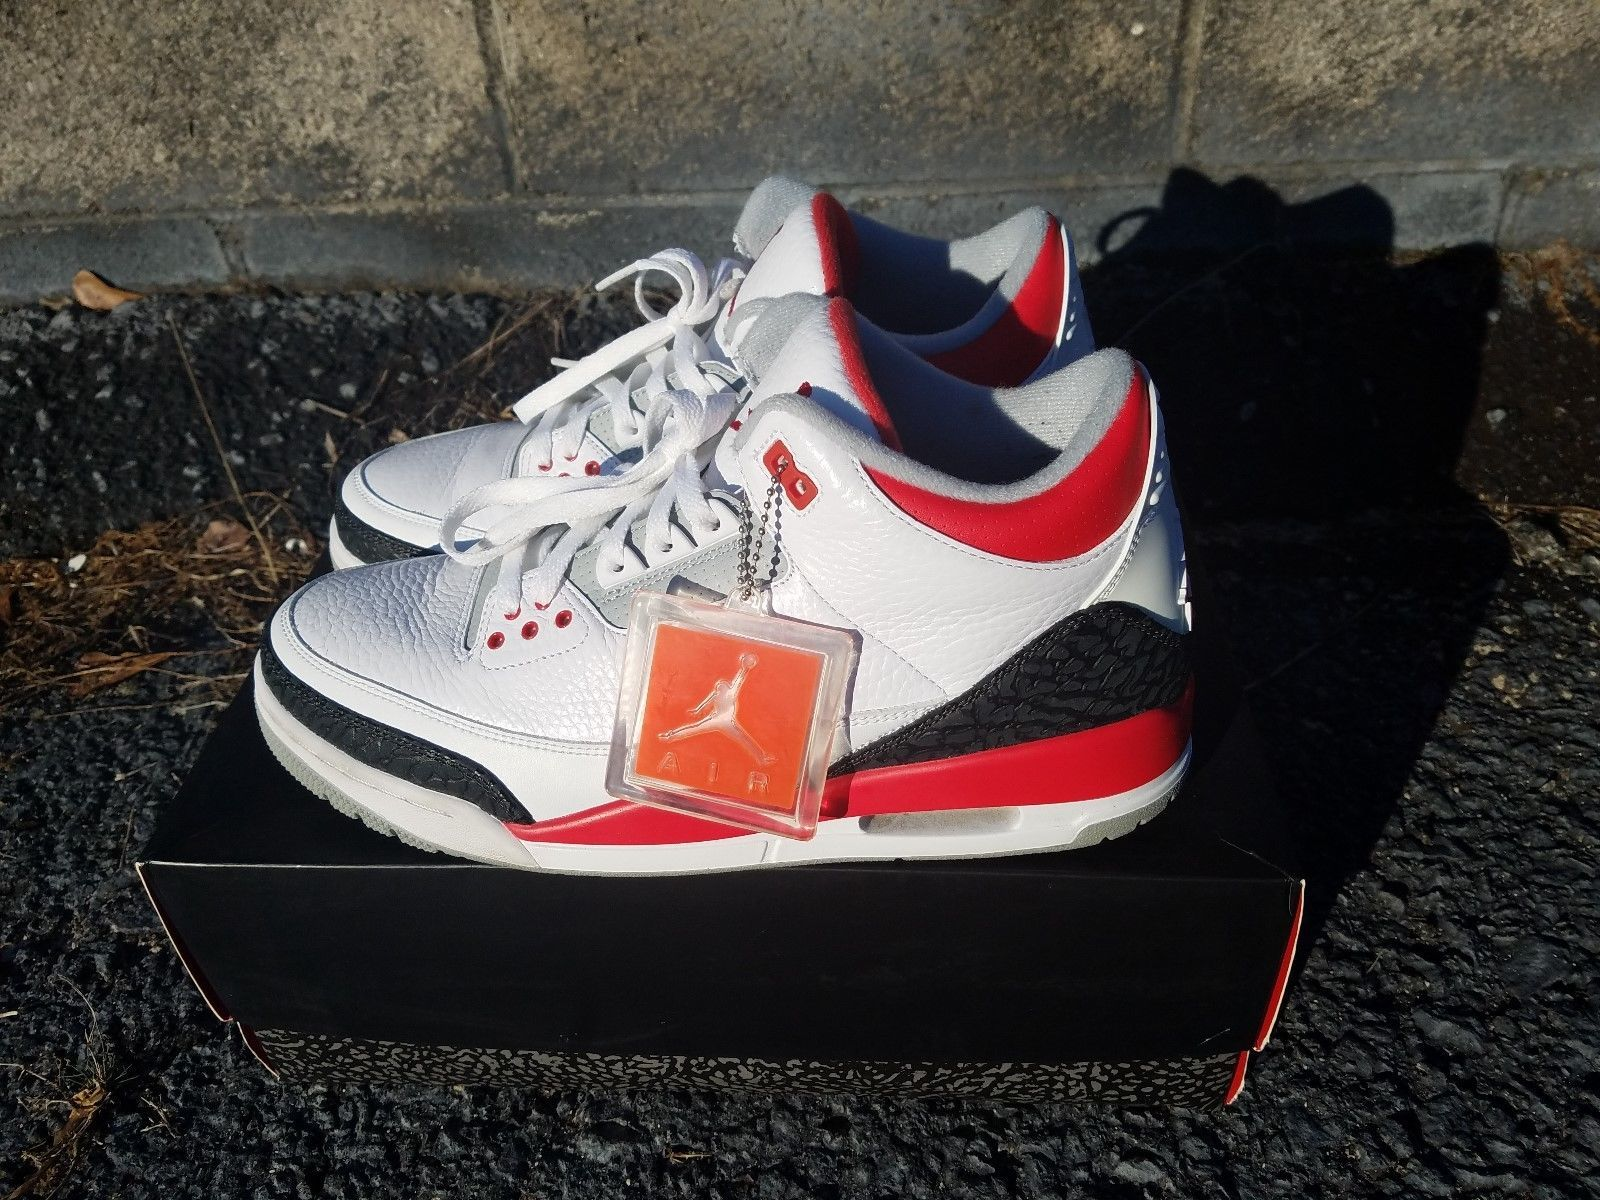 buy popular 18a03 2103c czech air jordan 3 retro white fire red silver black us10.5 9dd17 bb687